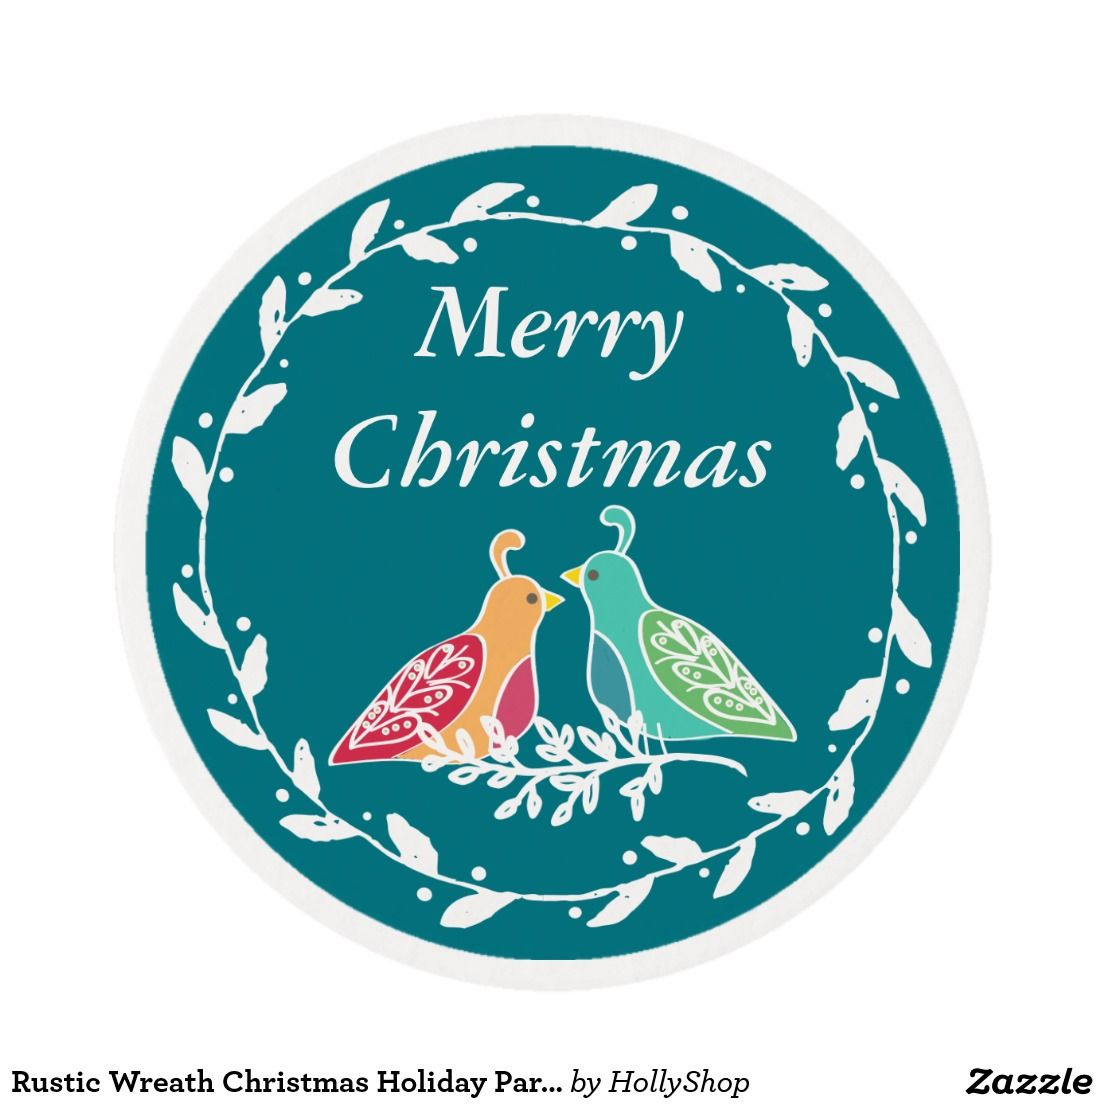 Rustic Wreath Christmas Holiday Partridge Birds Edible Frosting Rounds